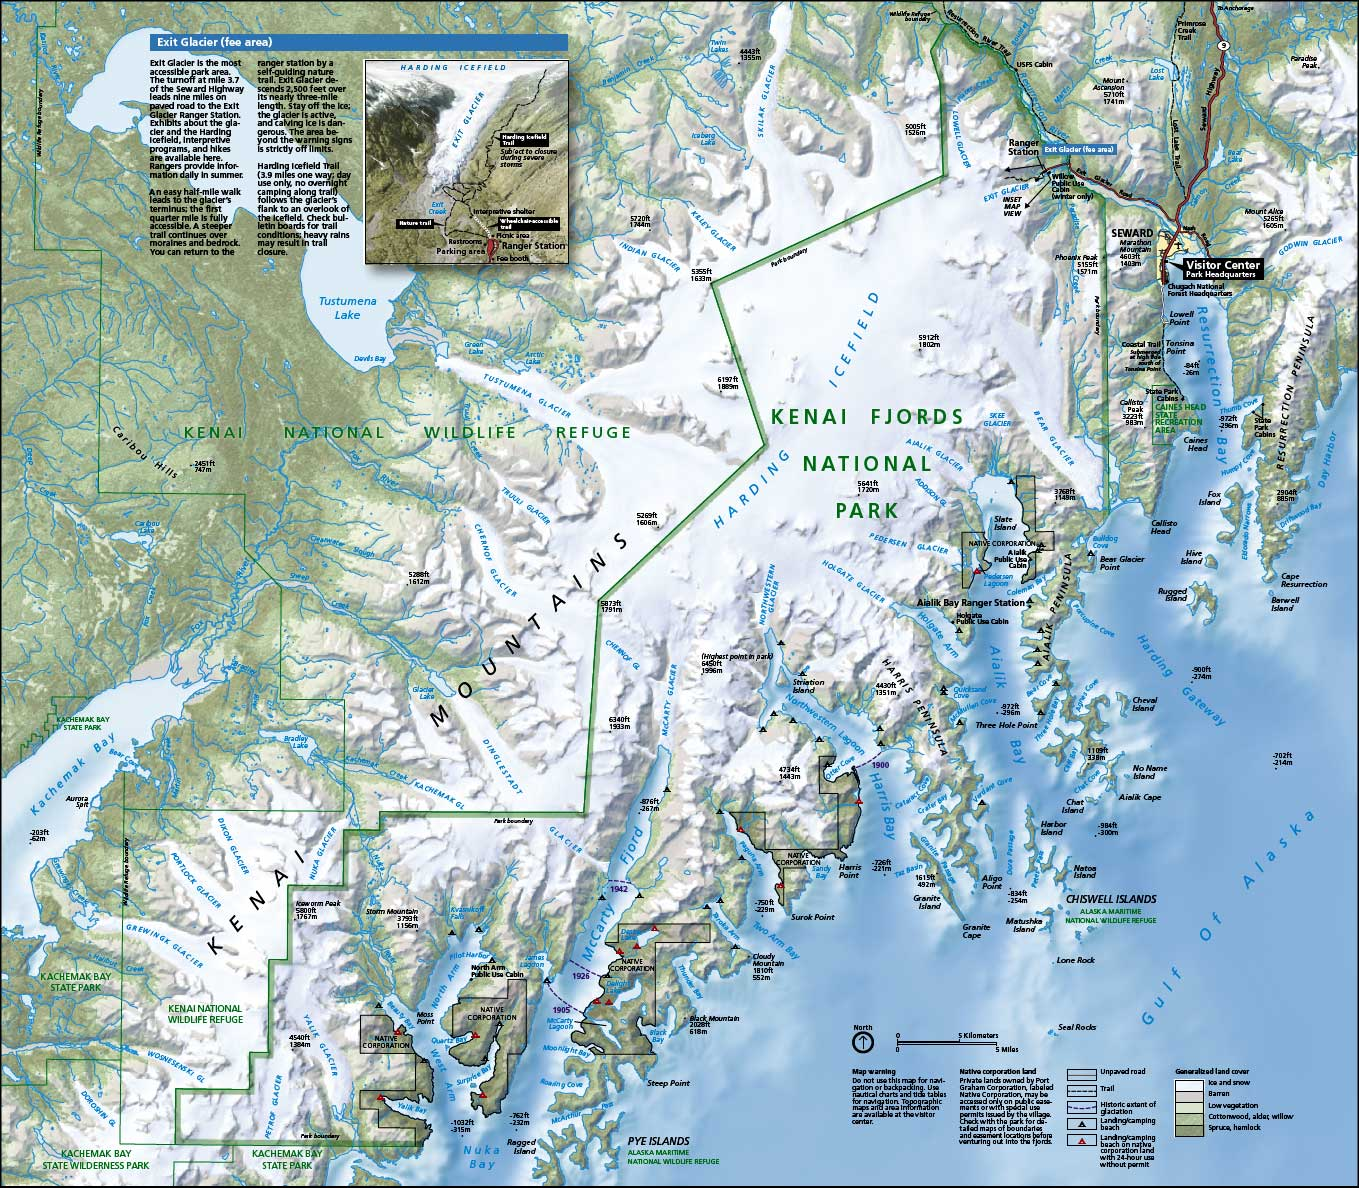 Kenai Fjords National Park | National Park Service Sites in Alaska on wentworth state park, sunrise state park, big lake state park, white mountain state park, springfield state park, happy valley state park, pilot point state park, kenai state park, togiak state park, delta junction state park, fishhook state park, juneau state park, lowell point state park, fox river state park, primrose state park, houston state park, eagle state park, mcgrath state park, weston state park, clayton state park,